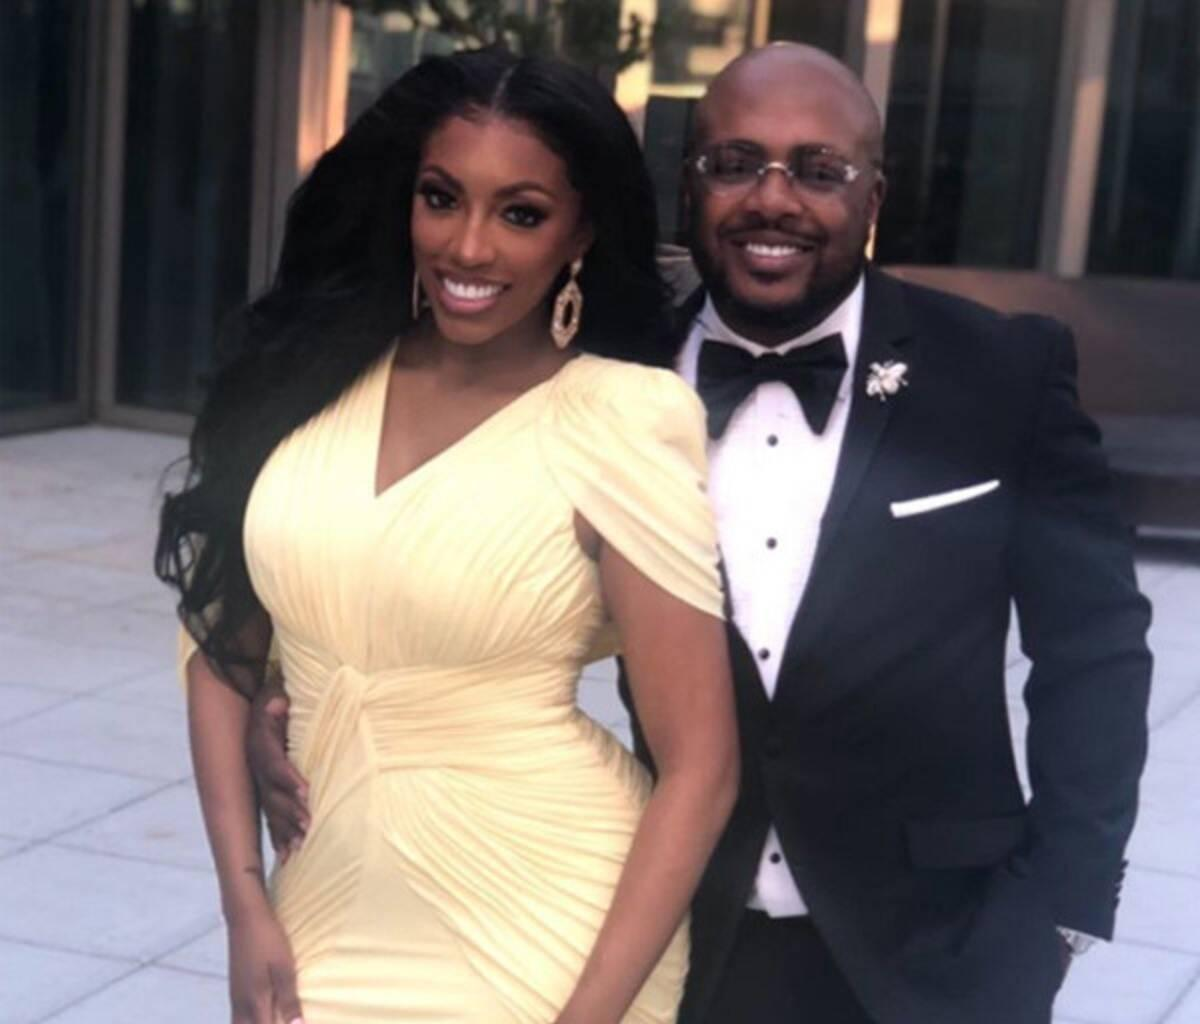 Porsha Williams Has Fans Laughing Their Hearts Out With This Funny Video: 'Dennis Just Called The Police On Me'